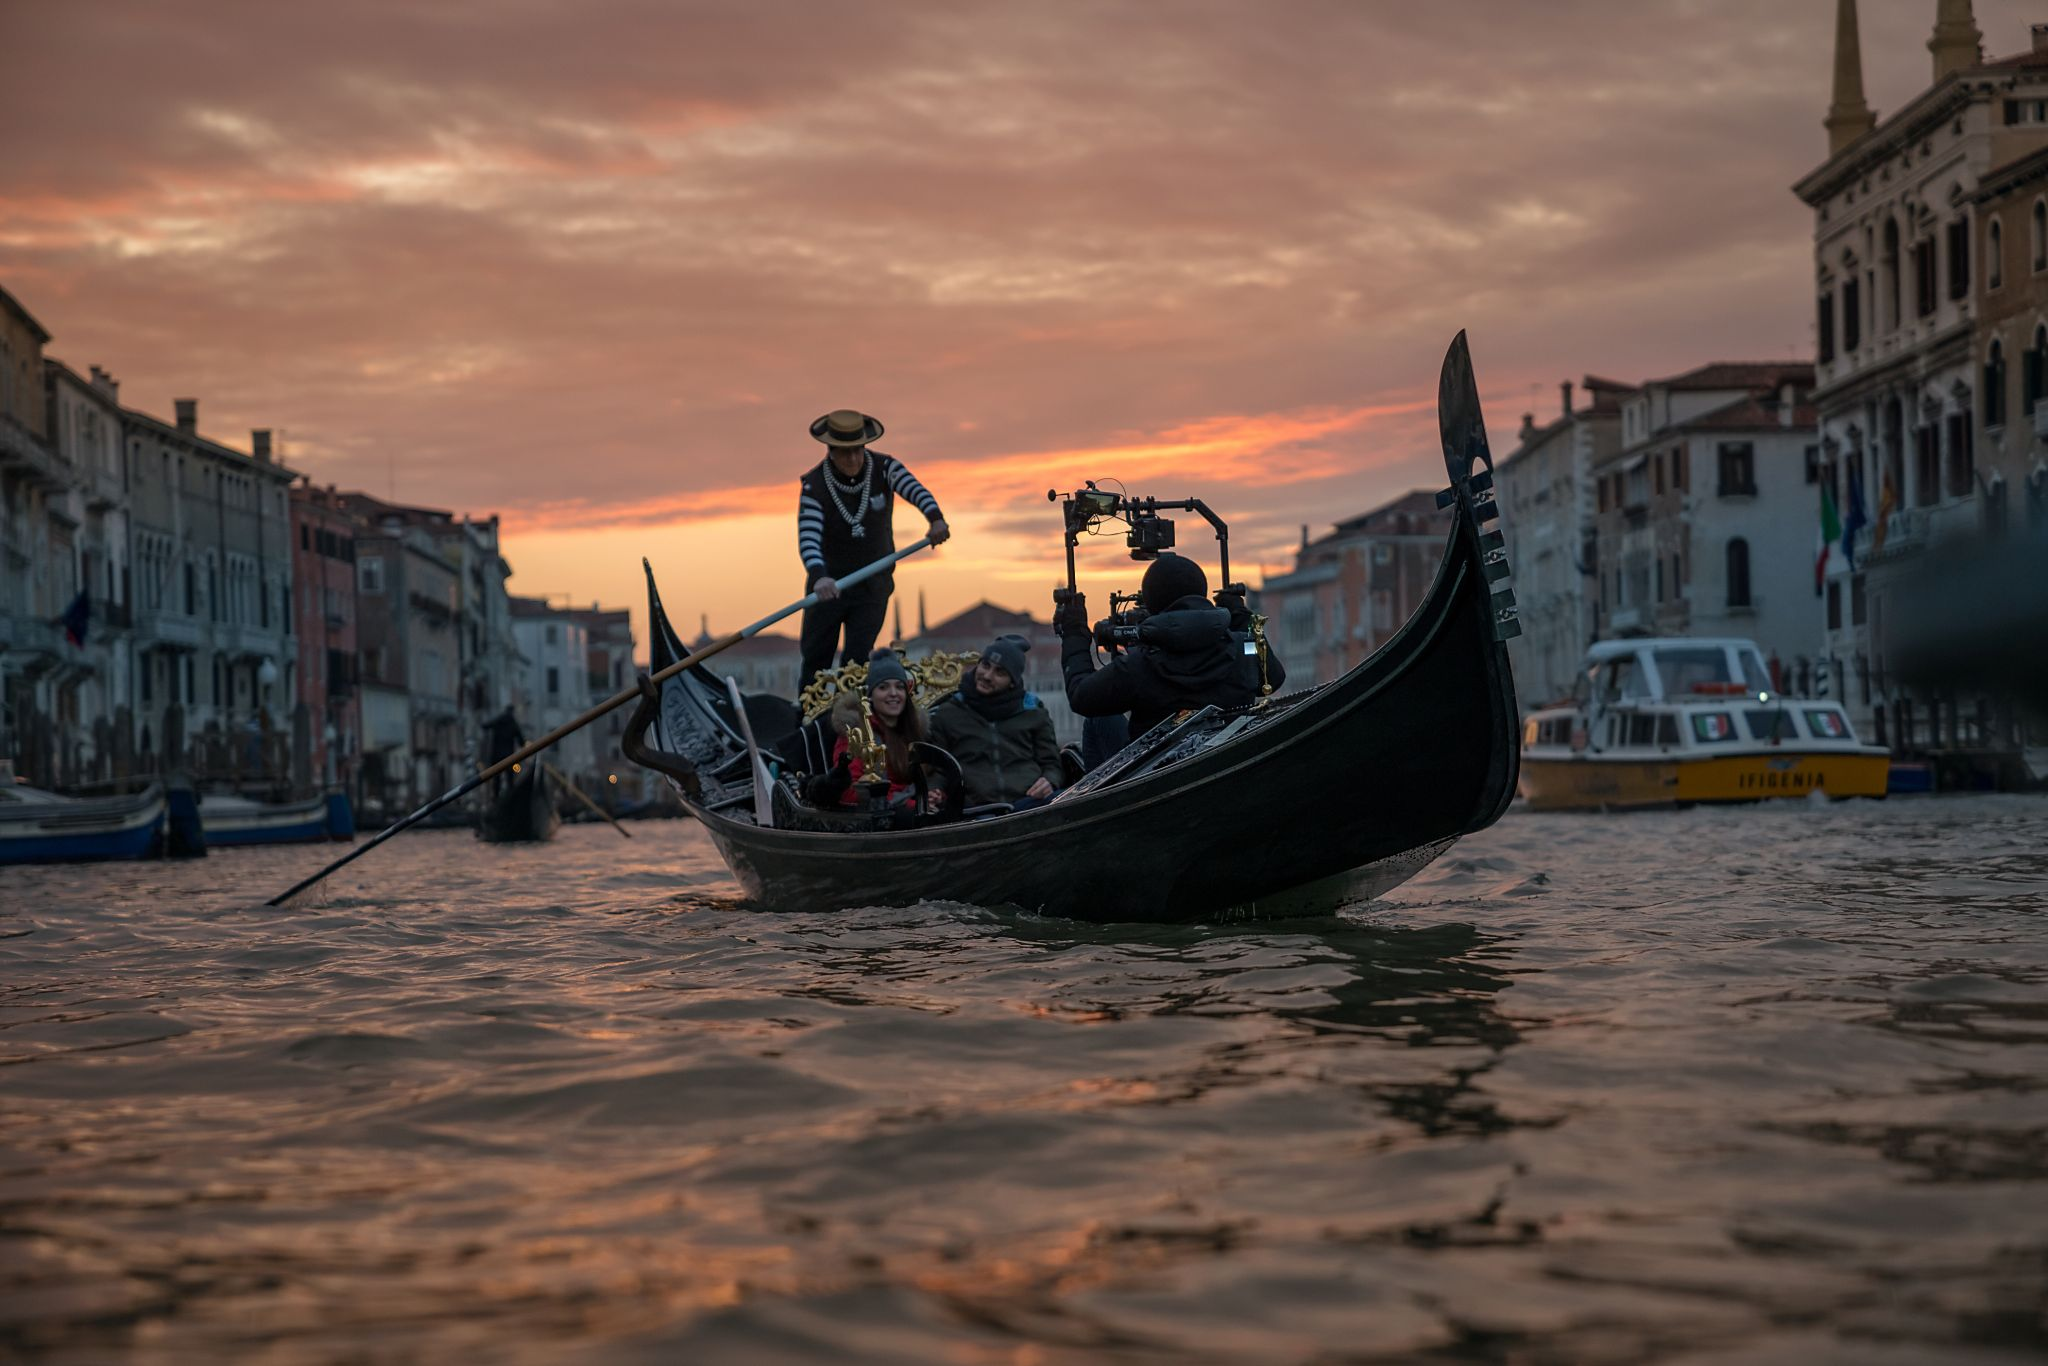 Shooting on a gondola at sunset